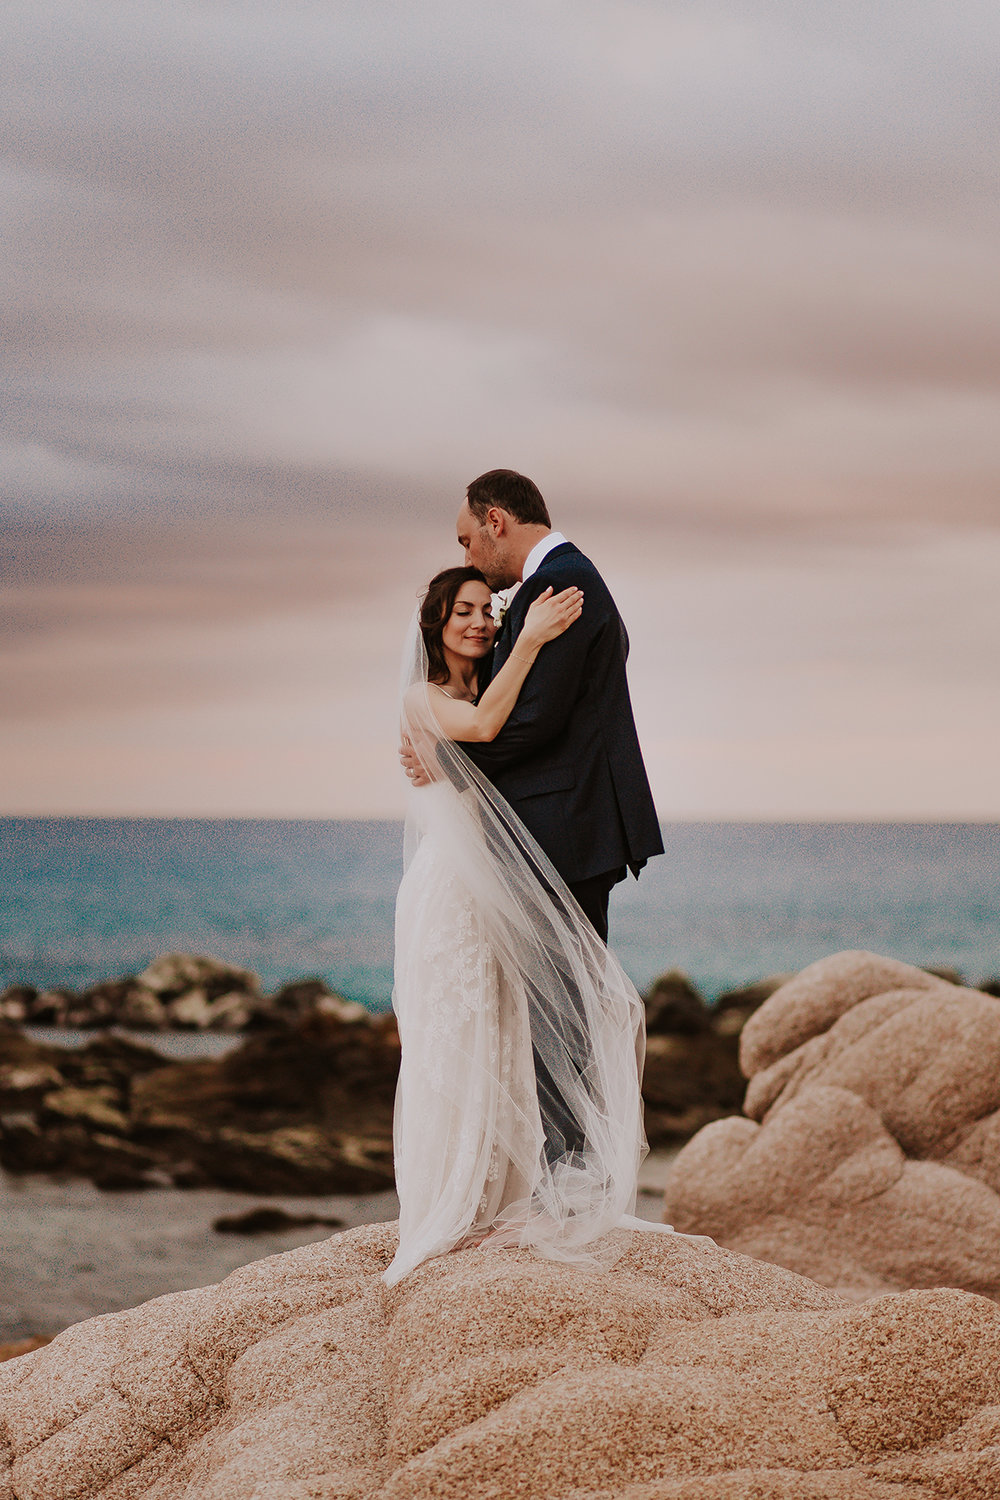 Lindsei+James_cabo_wedding_831.jpg